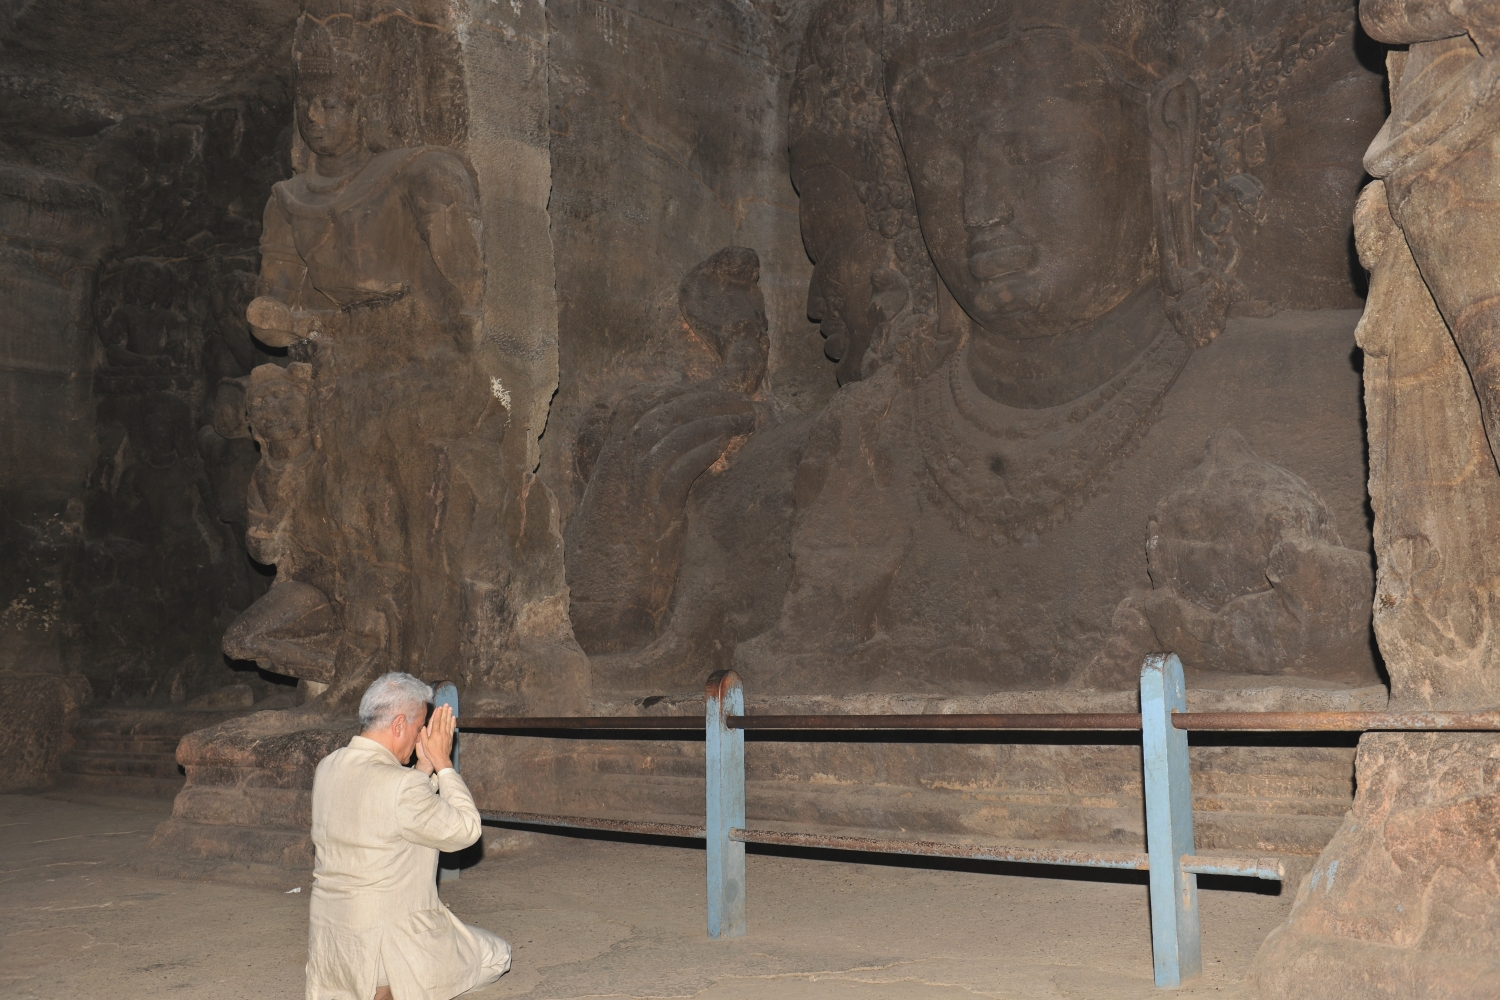 Elephanta Caves, Mumbai, India - 2009